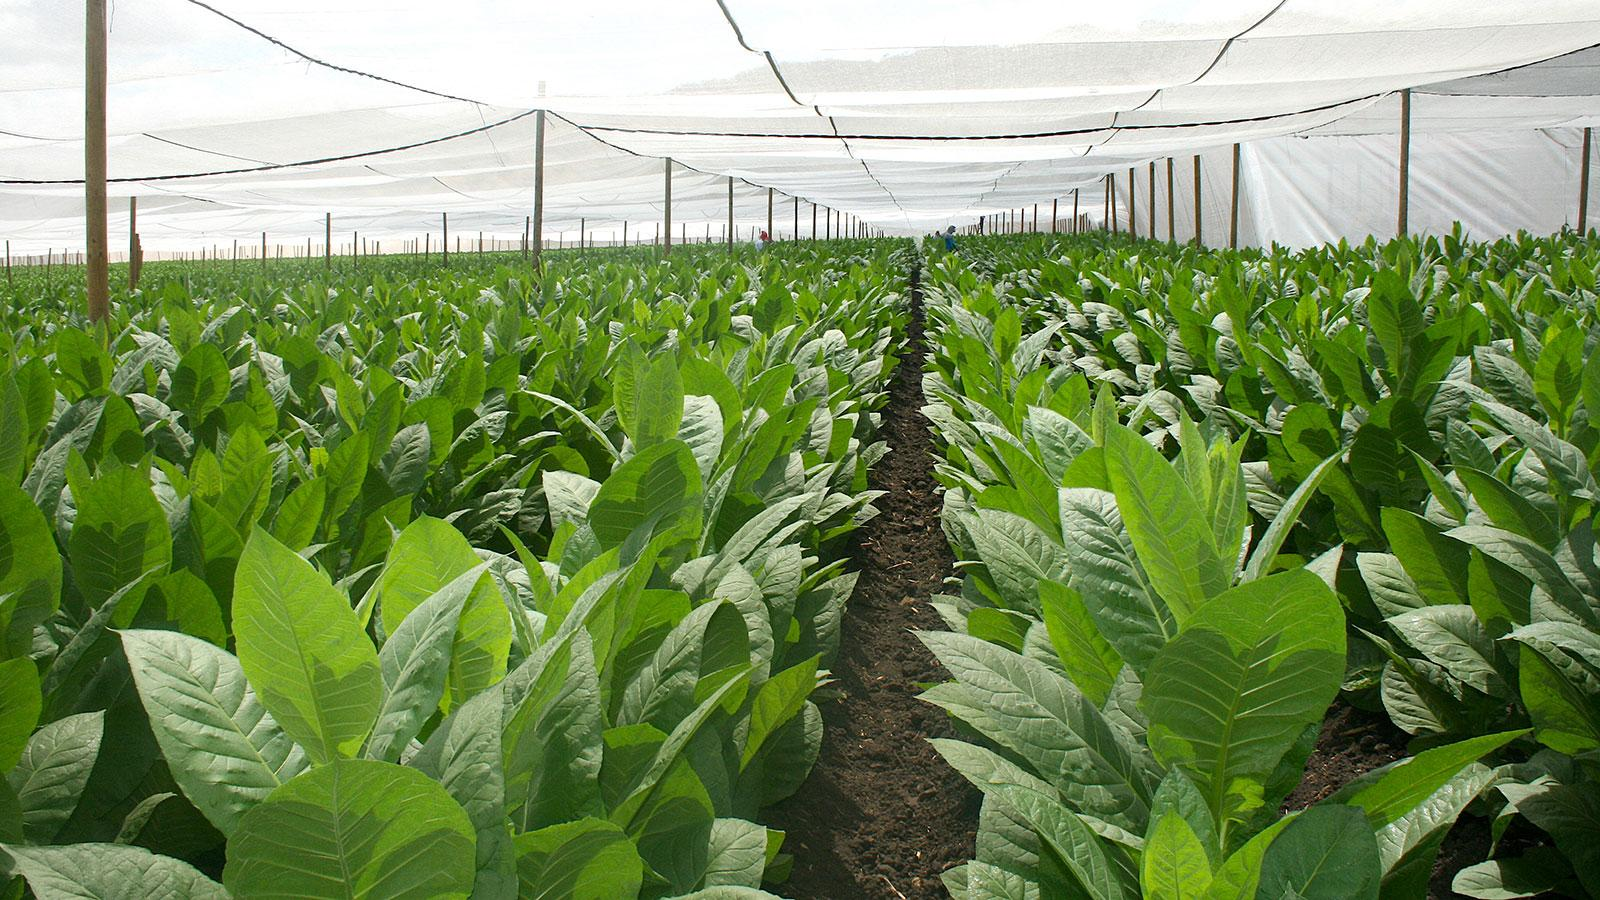 Nicaragua's Tobacco Growers Optimistic About Crops Despite Wind